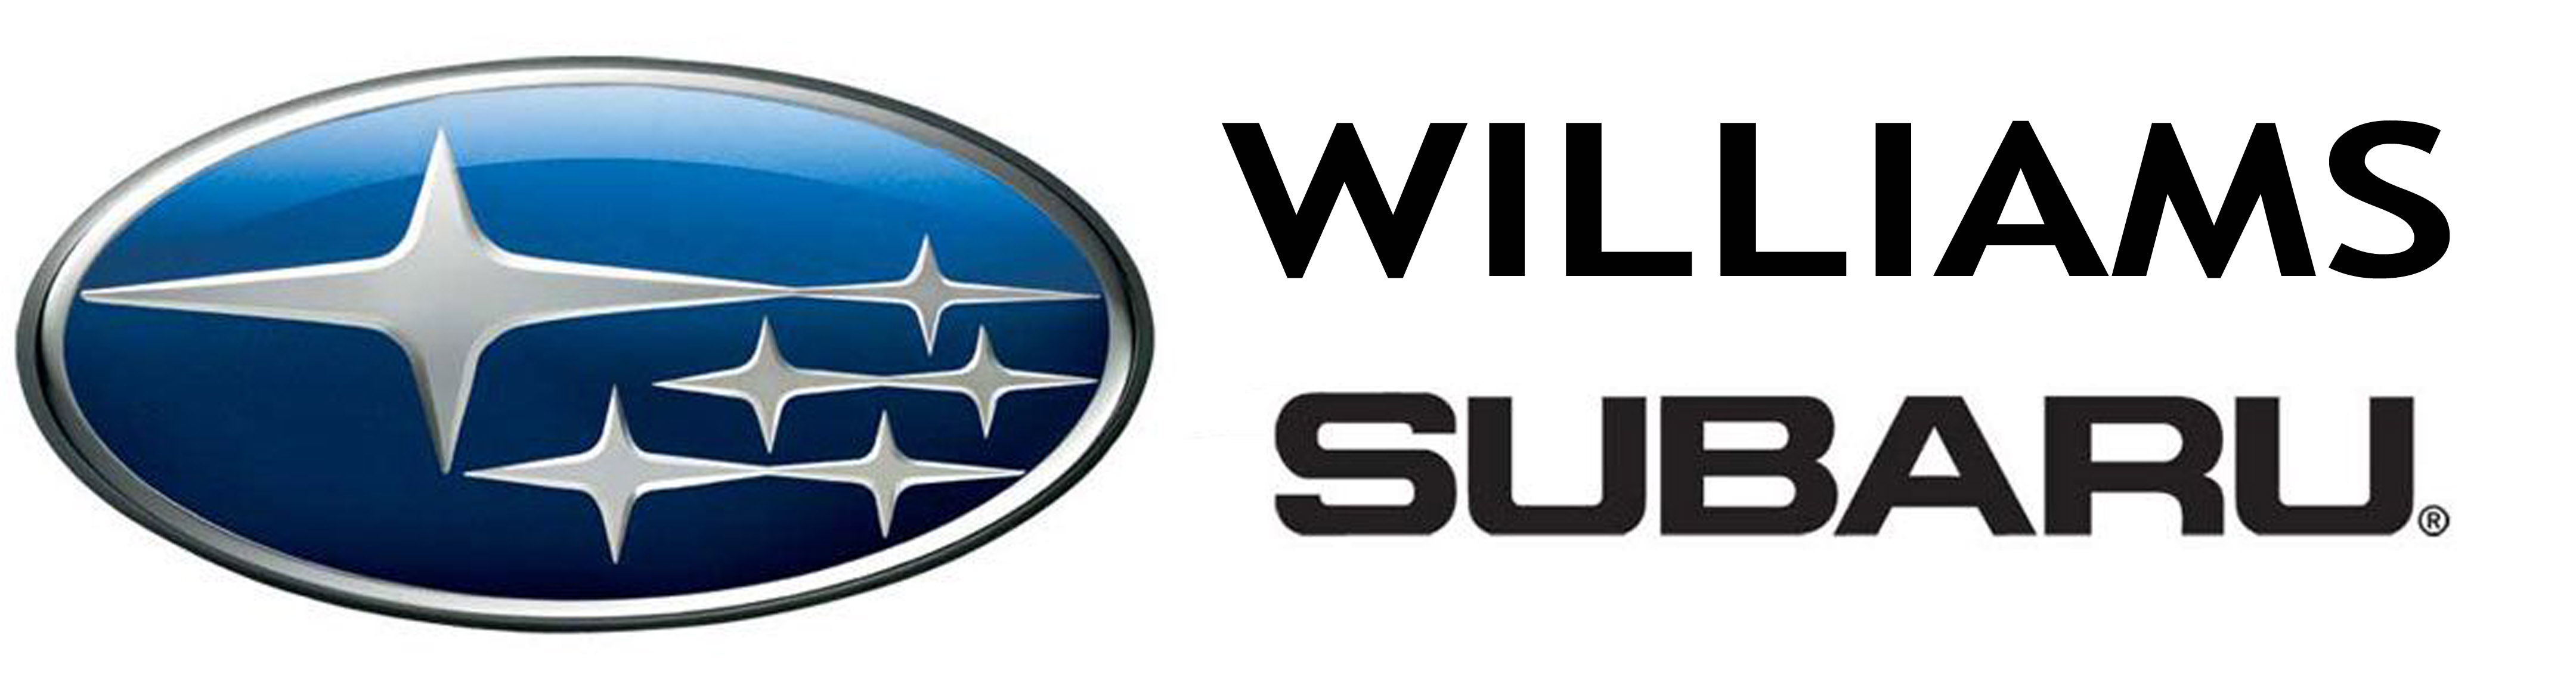 Williams Subaru